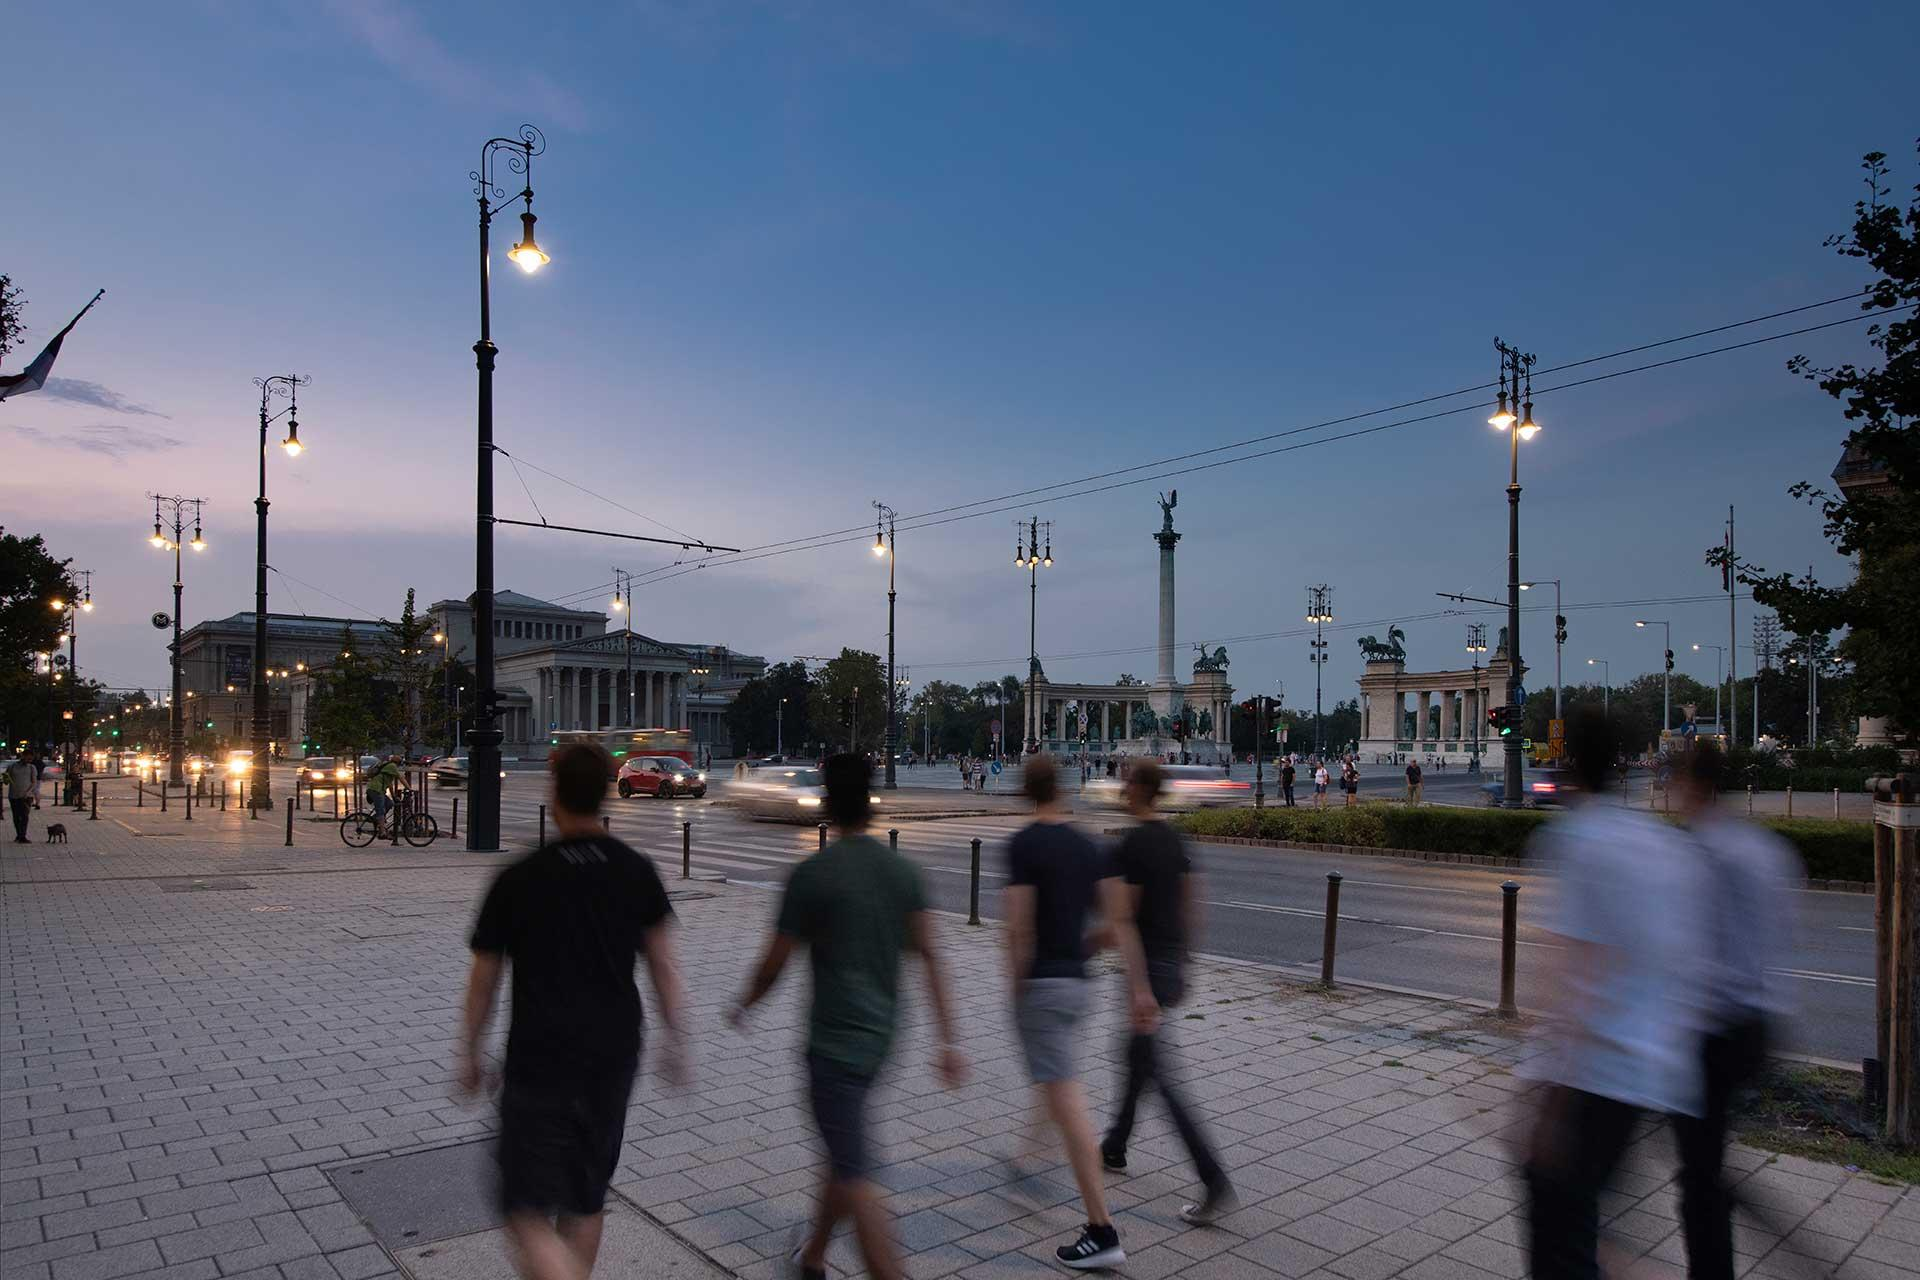 The kandelabra lanterns created by Schréder provide a gentle white light to ensure safety and comfort around Hero Square, one of Budapest's most popular tourist spots